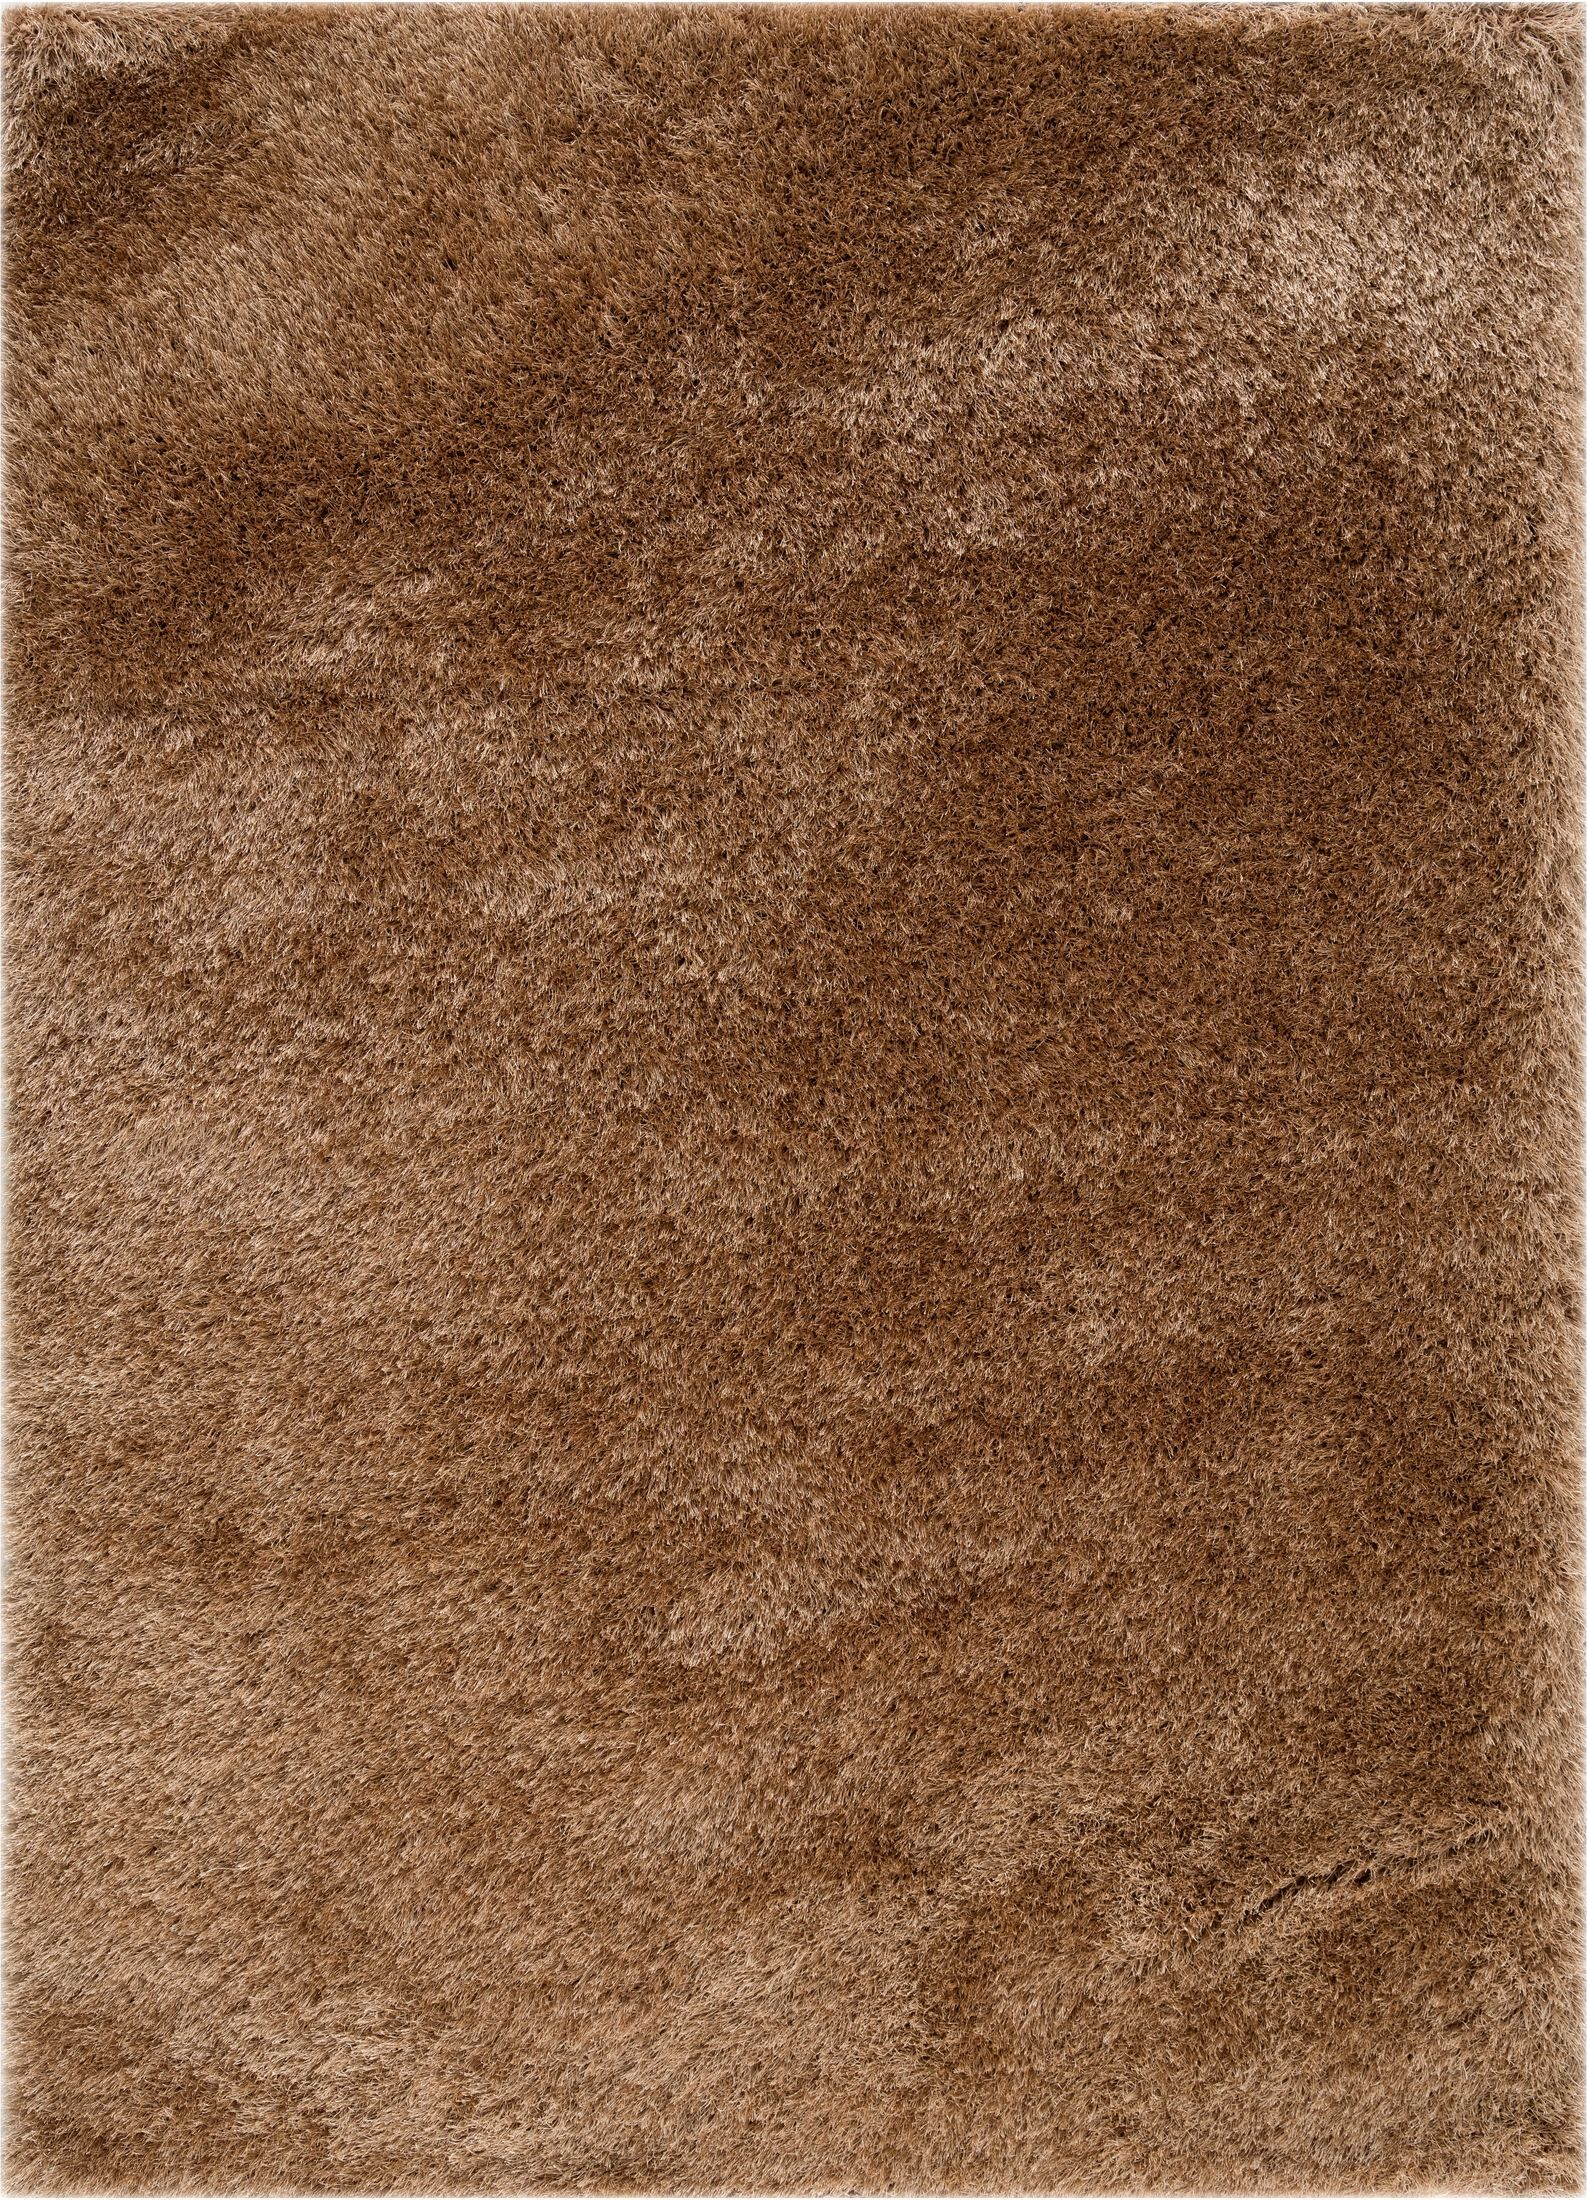 Zanca 5 X 7 Area Rug Gold In 2021 Rugs Area Rugs Hand Tufted Rugs 5 by 7 area rugs